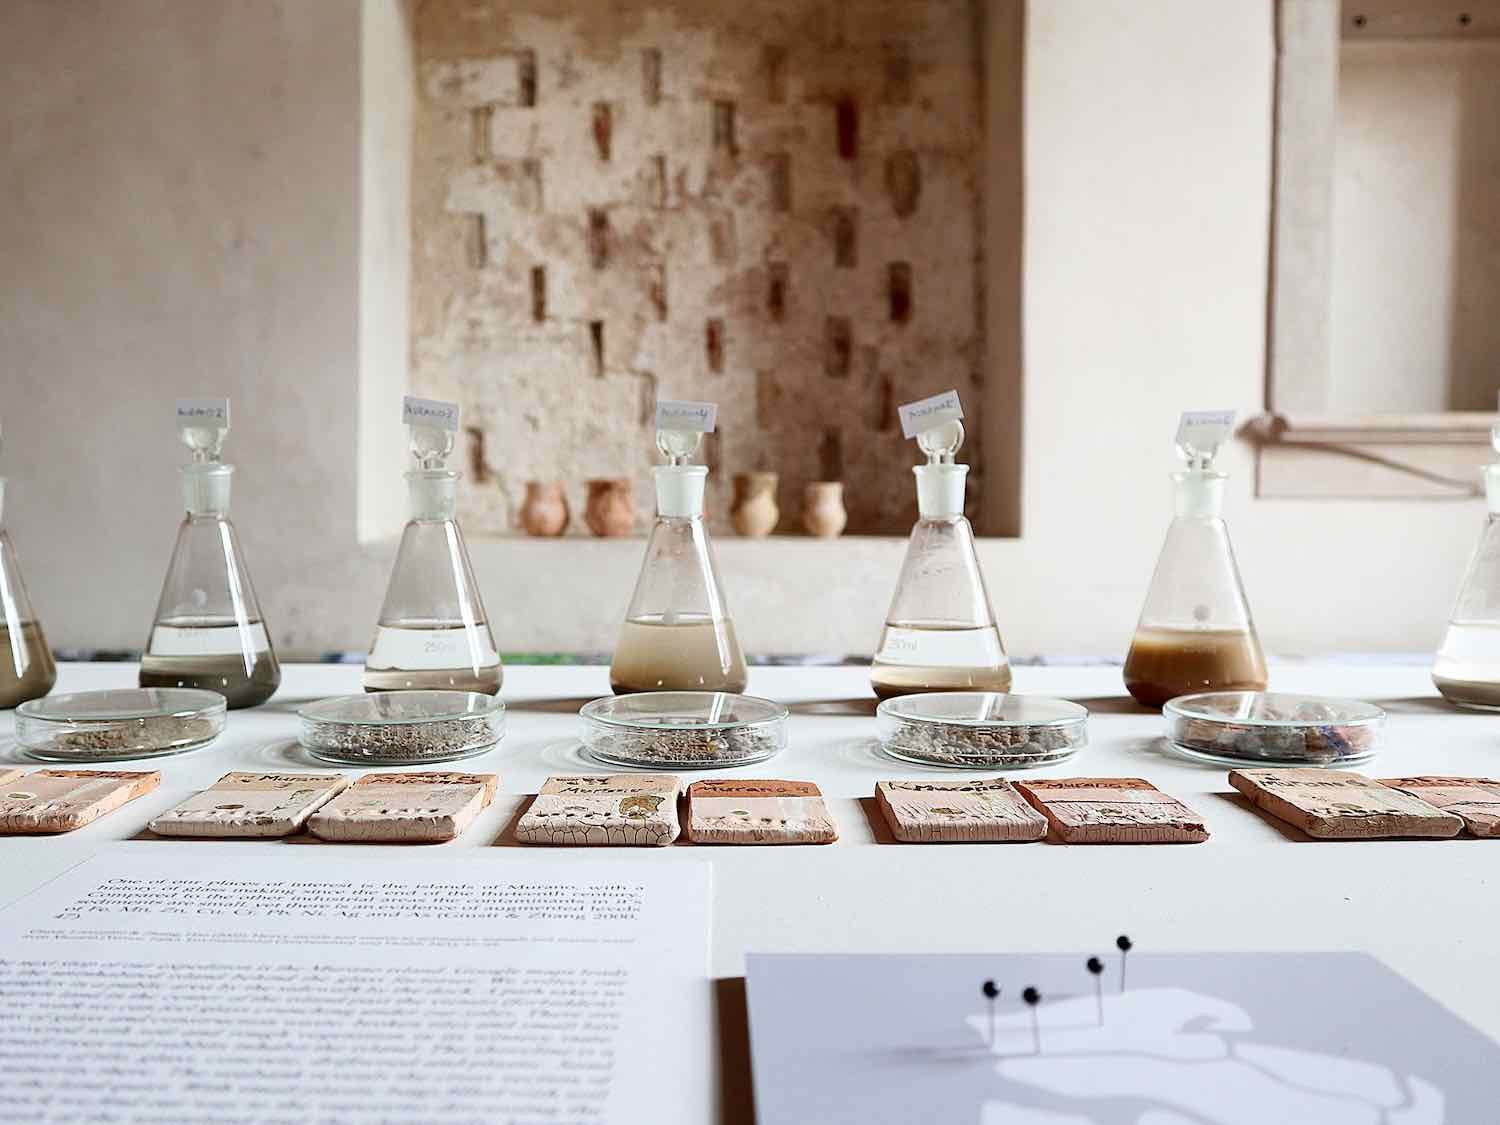 Helsinki Design Week 2019. Traces from antropocene soil group - Photo by Tzu Yu Chen